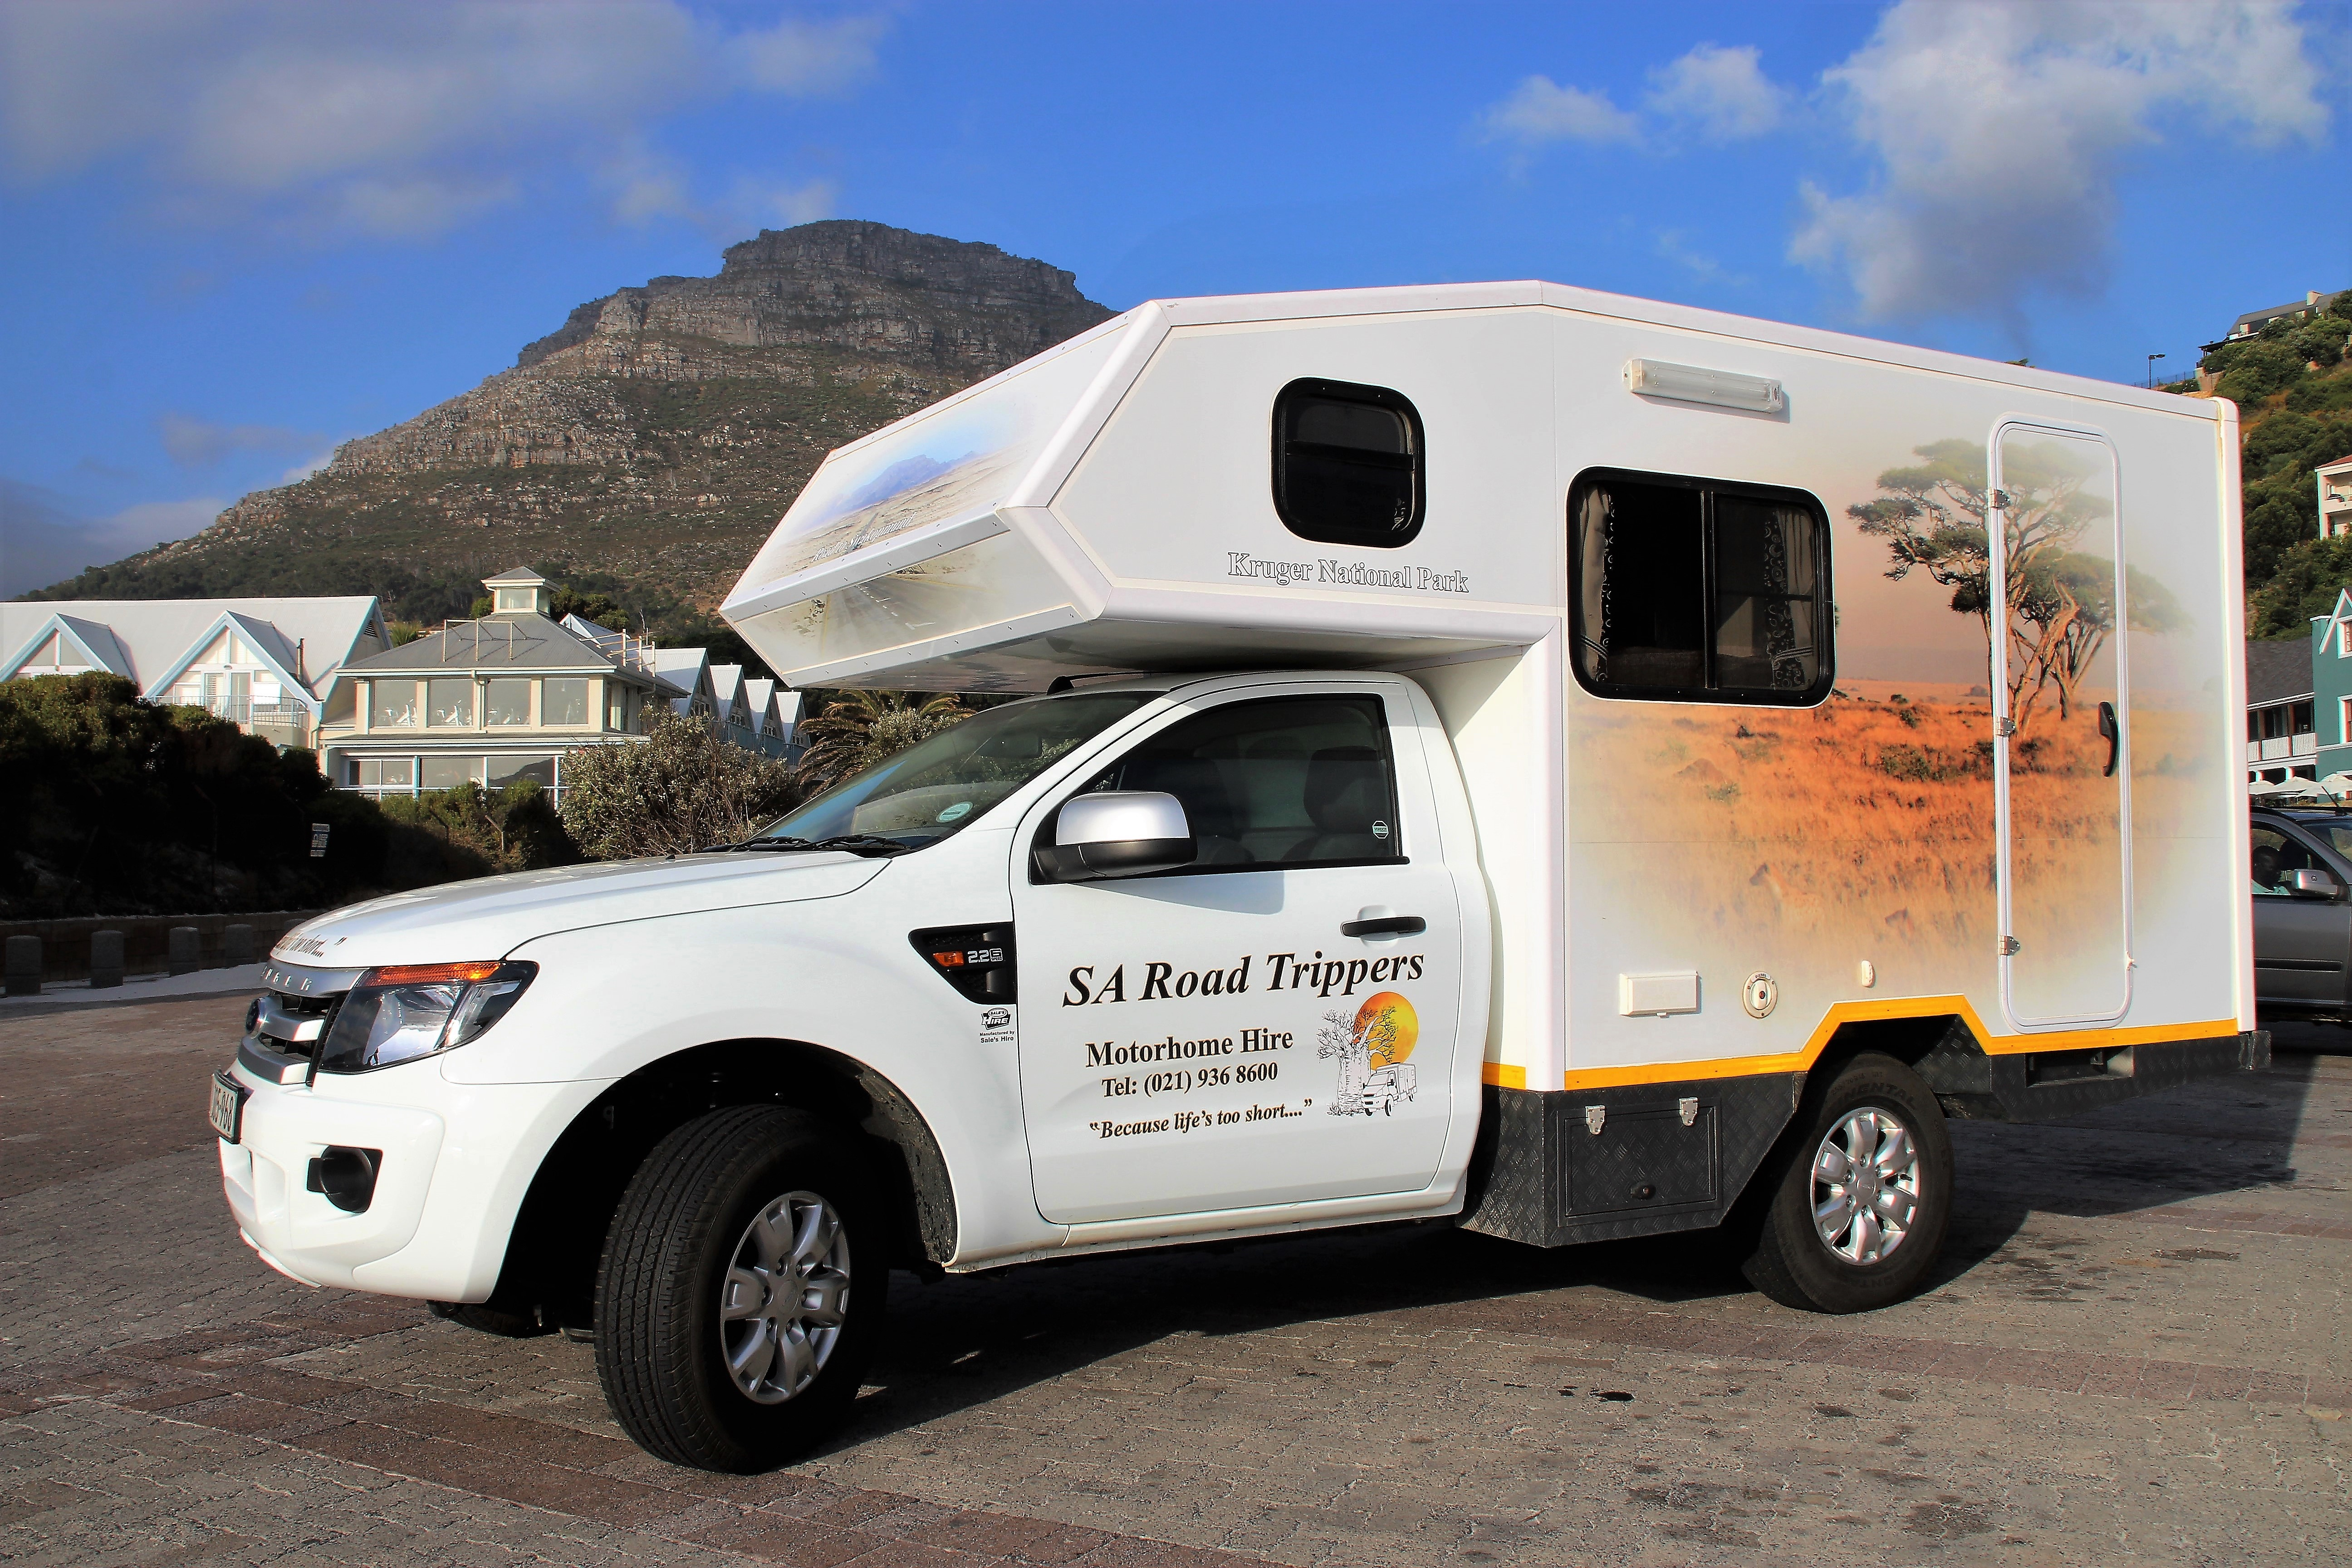 SA Roadtrippers Ranger